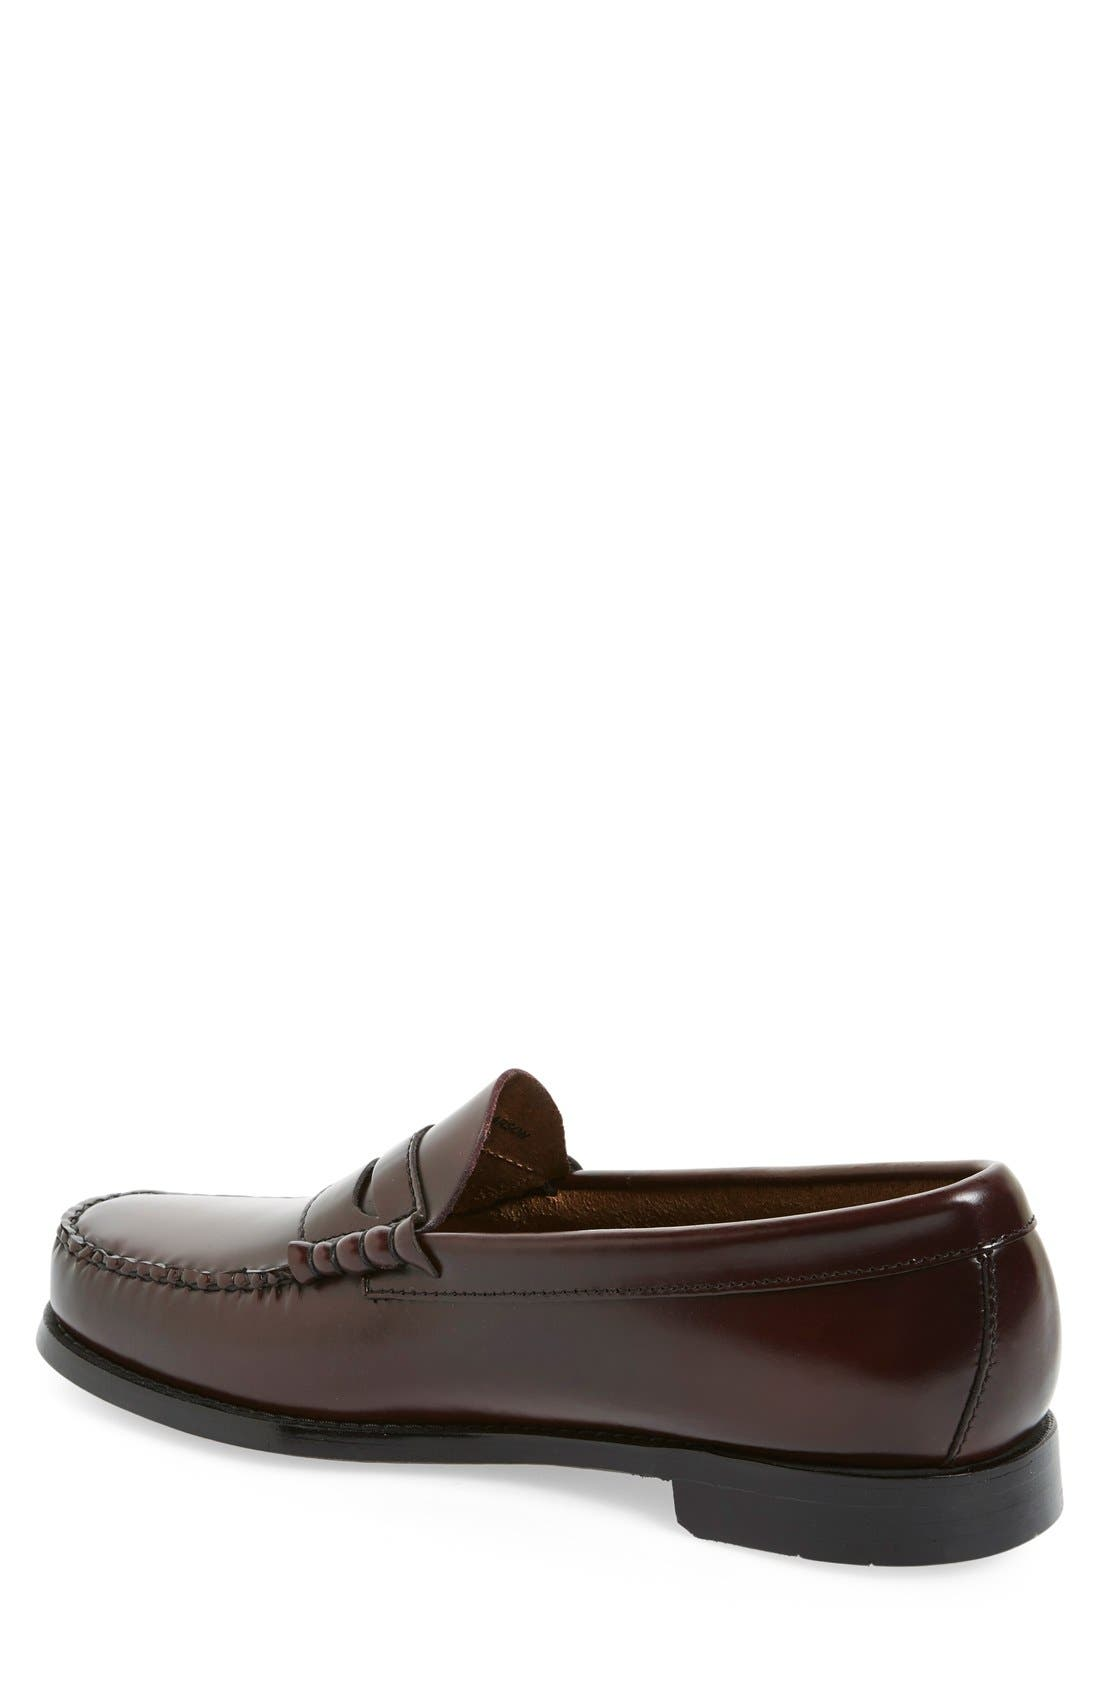 'Larson - Weejuns' Penny Loafer,                             Alternate thumbnail 2, color,                             603